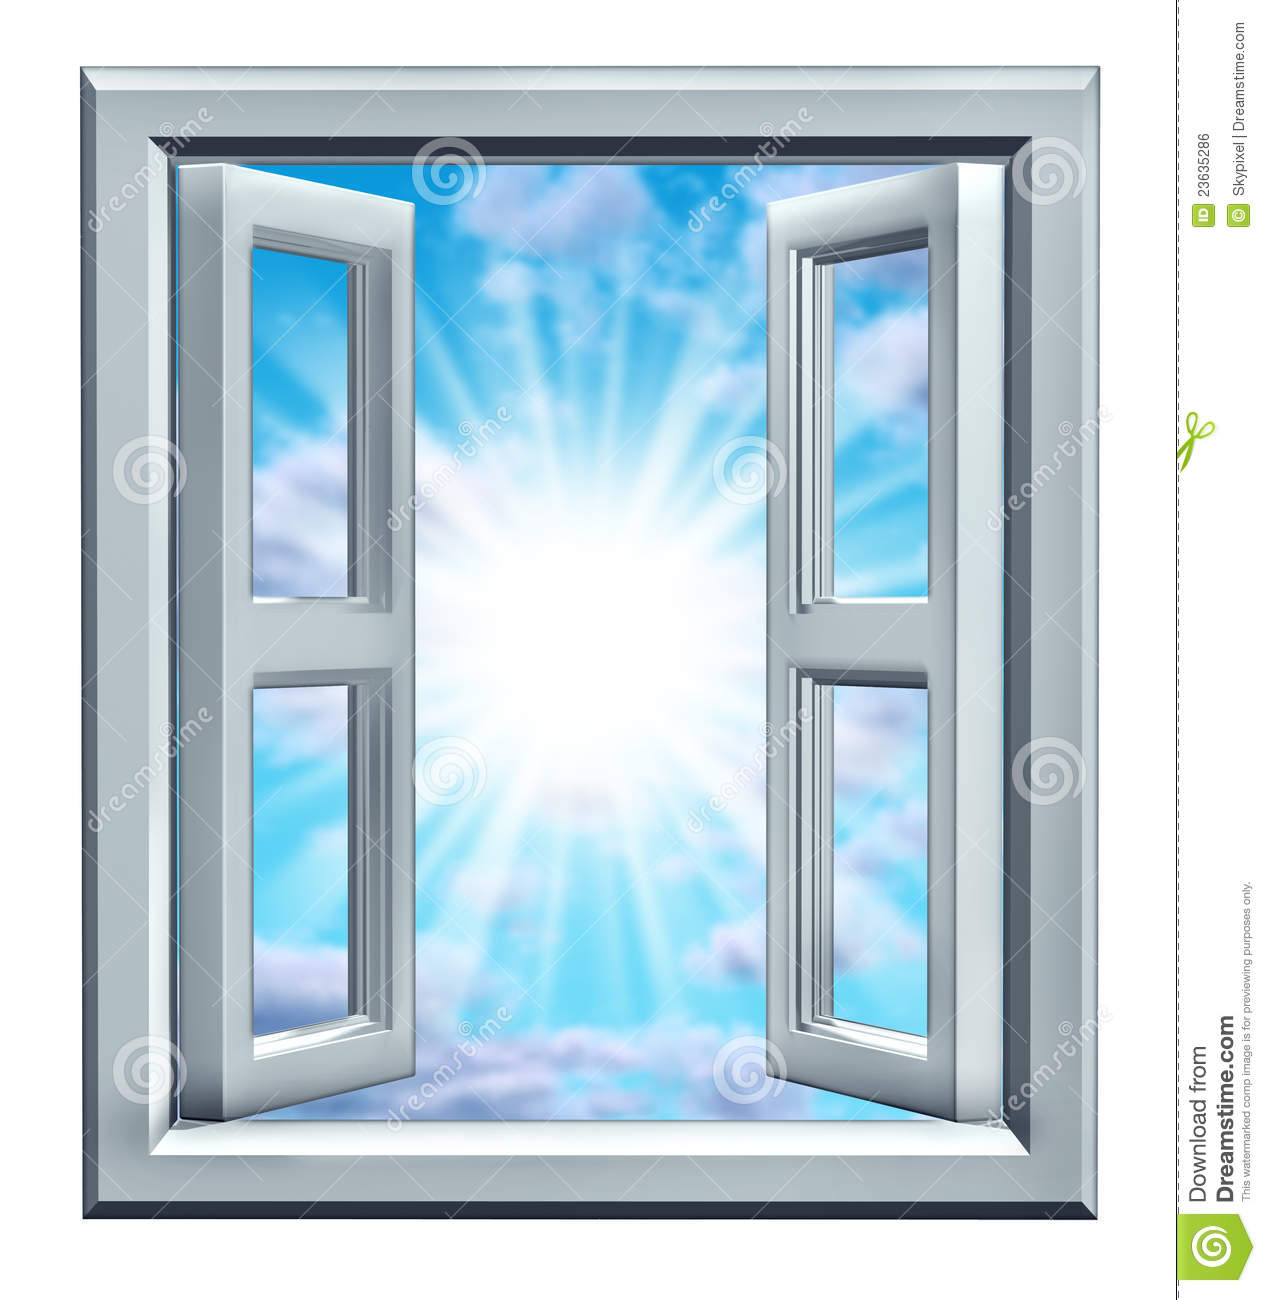 Window of opportunity royalty free stock image image for Window of opportunity